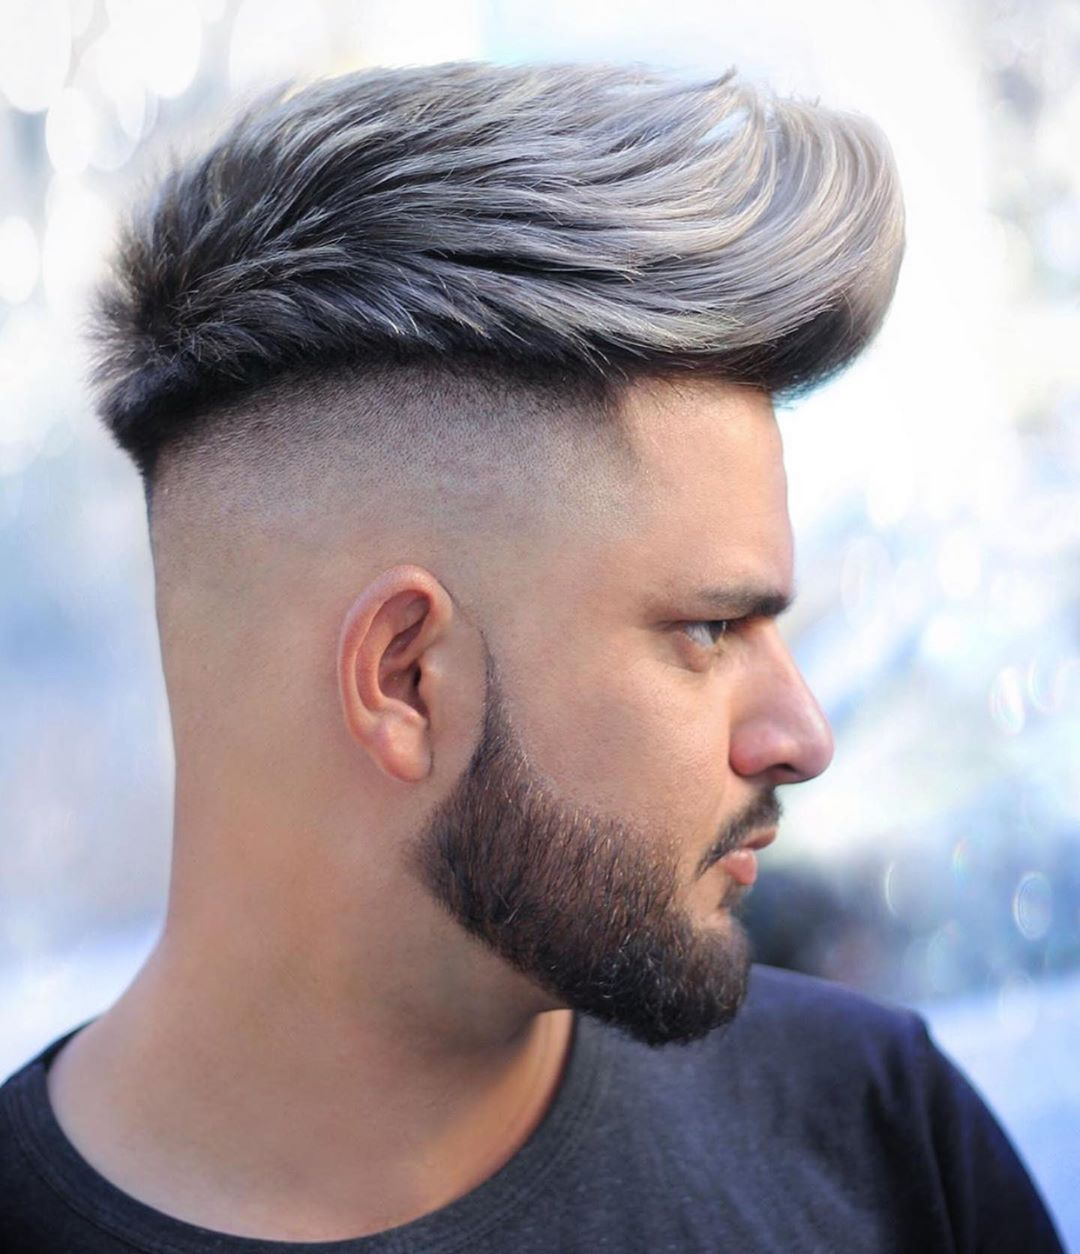 60 Best Young Men's Haircuts The latest young men's